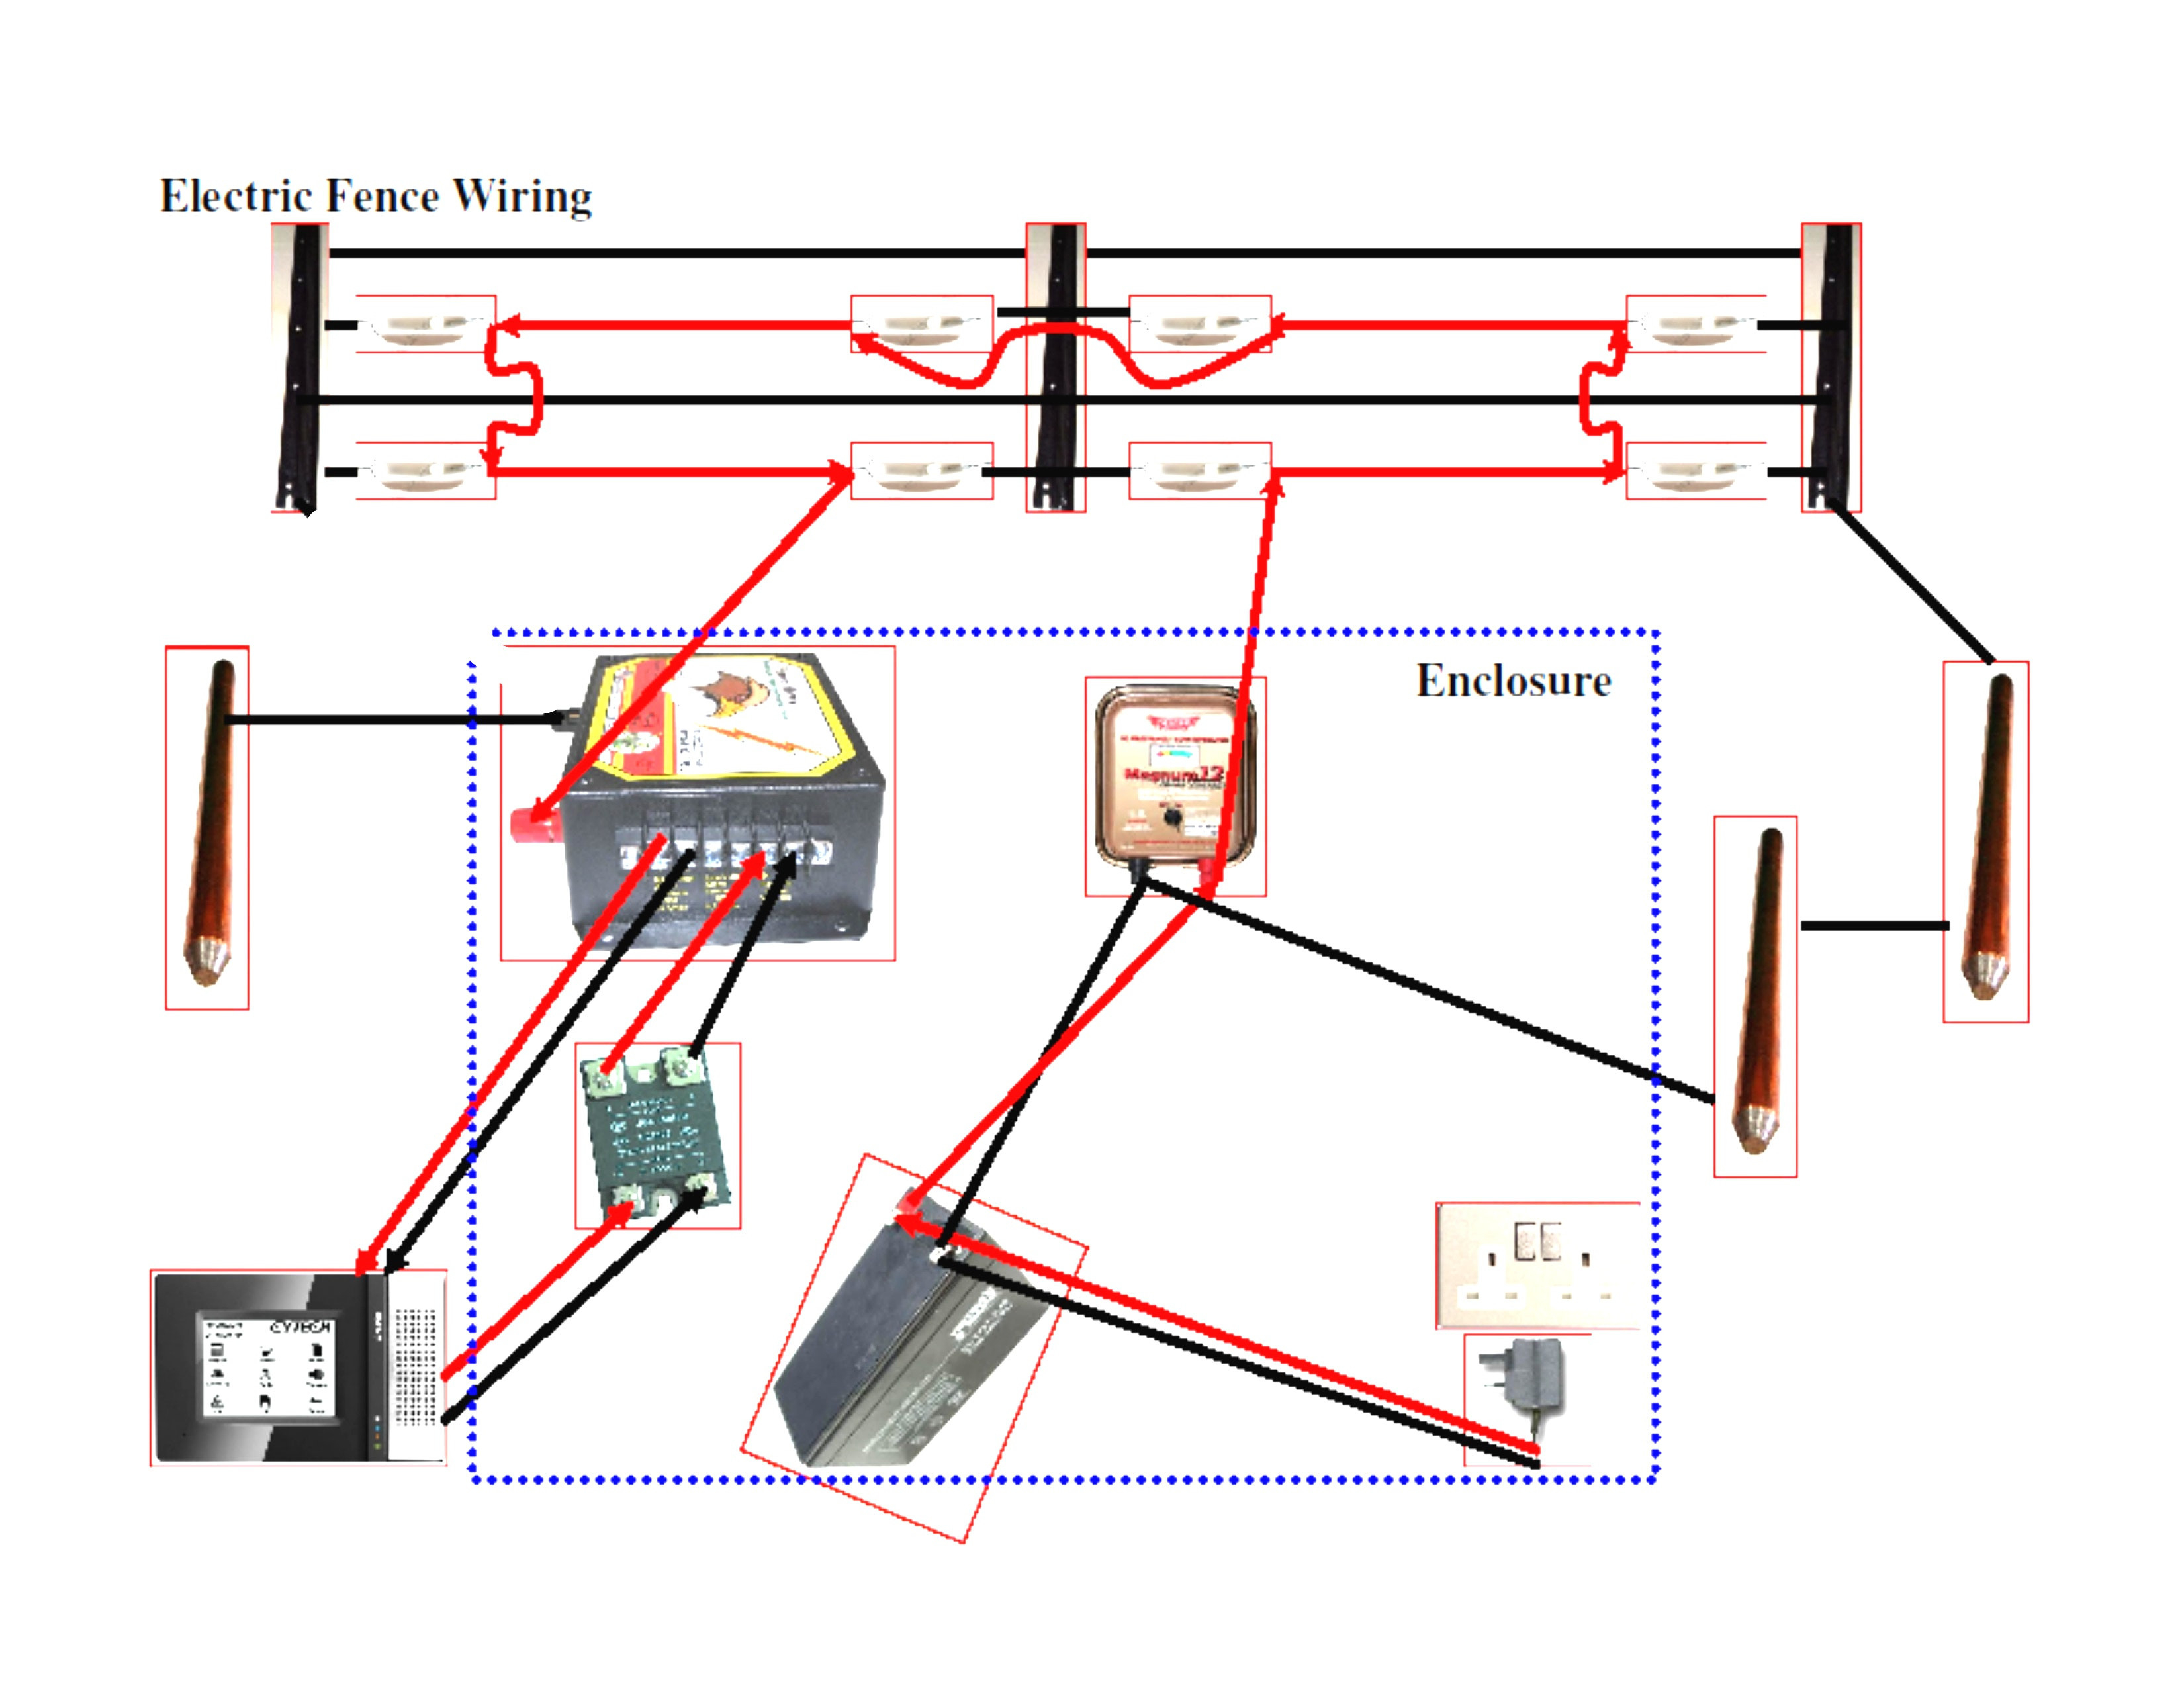 invisible fence wiring diagram sample wiring diagram hot wire fence invisible fence wiring diagram